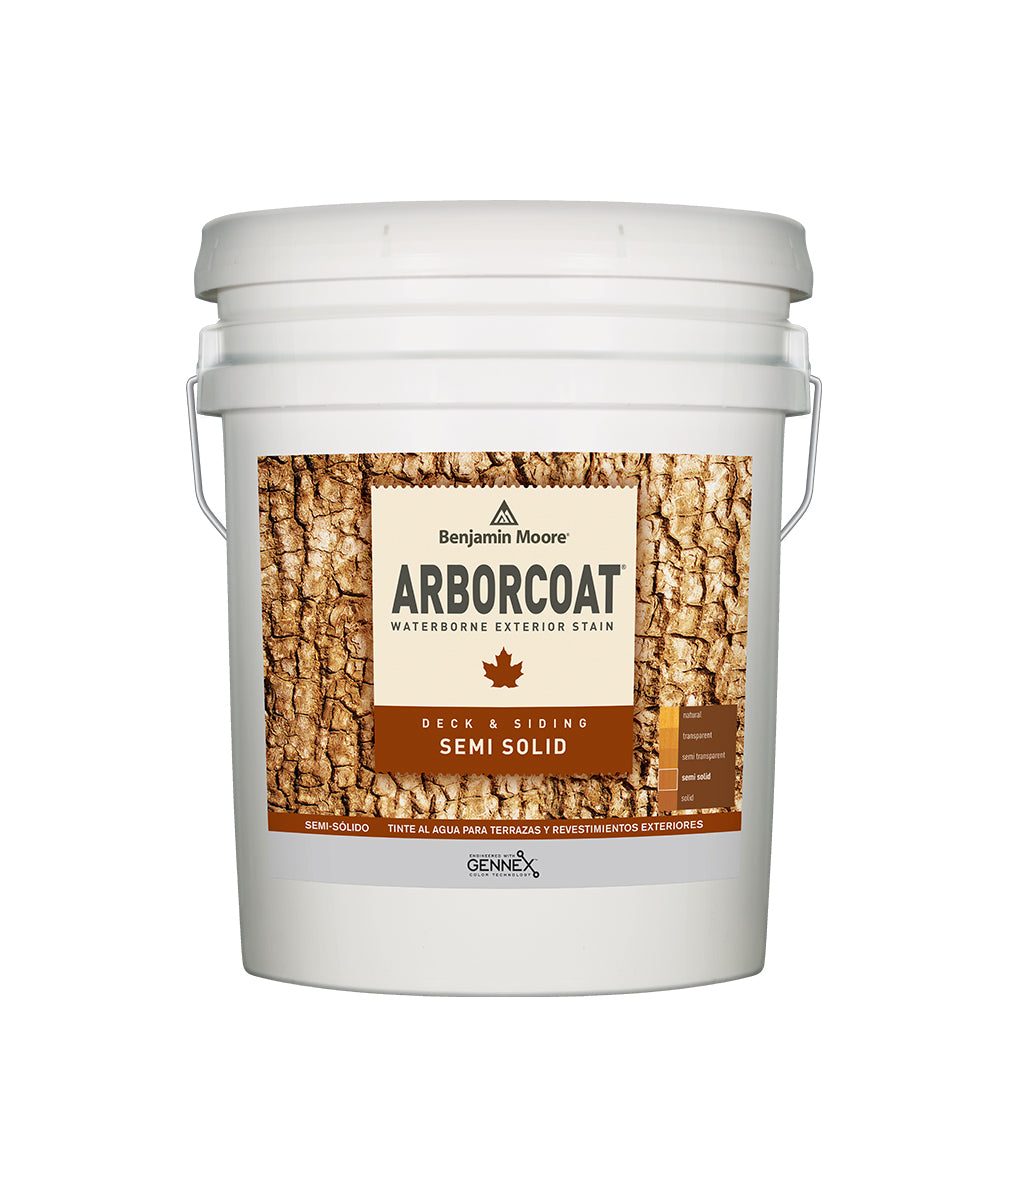 Arborcoat Semi-Solid 5 Gallon Pail, available at Catalina Paints in CA.